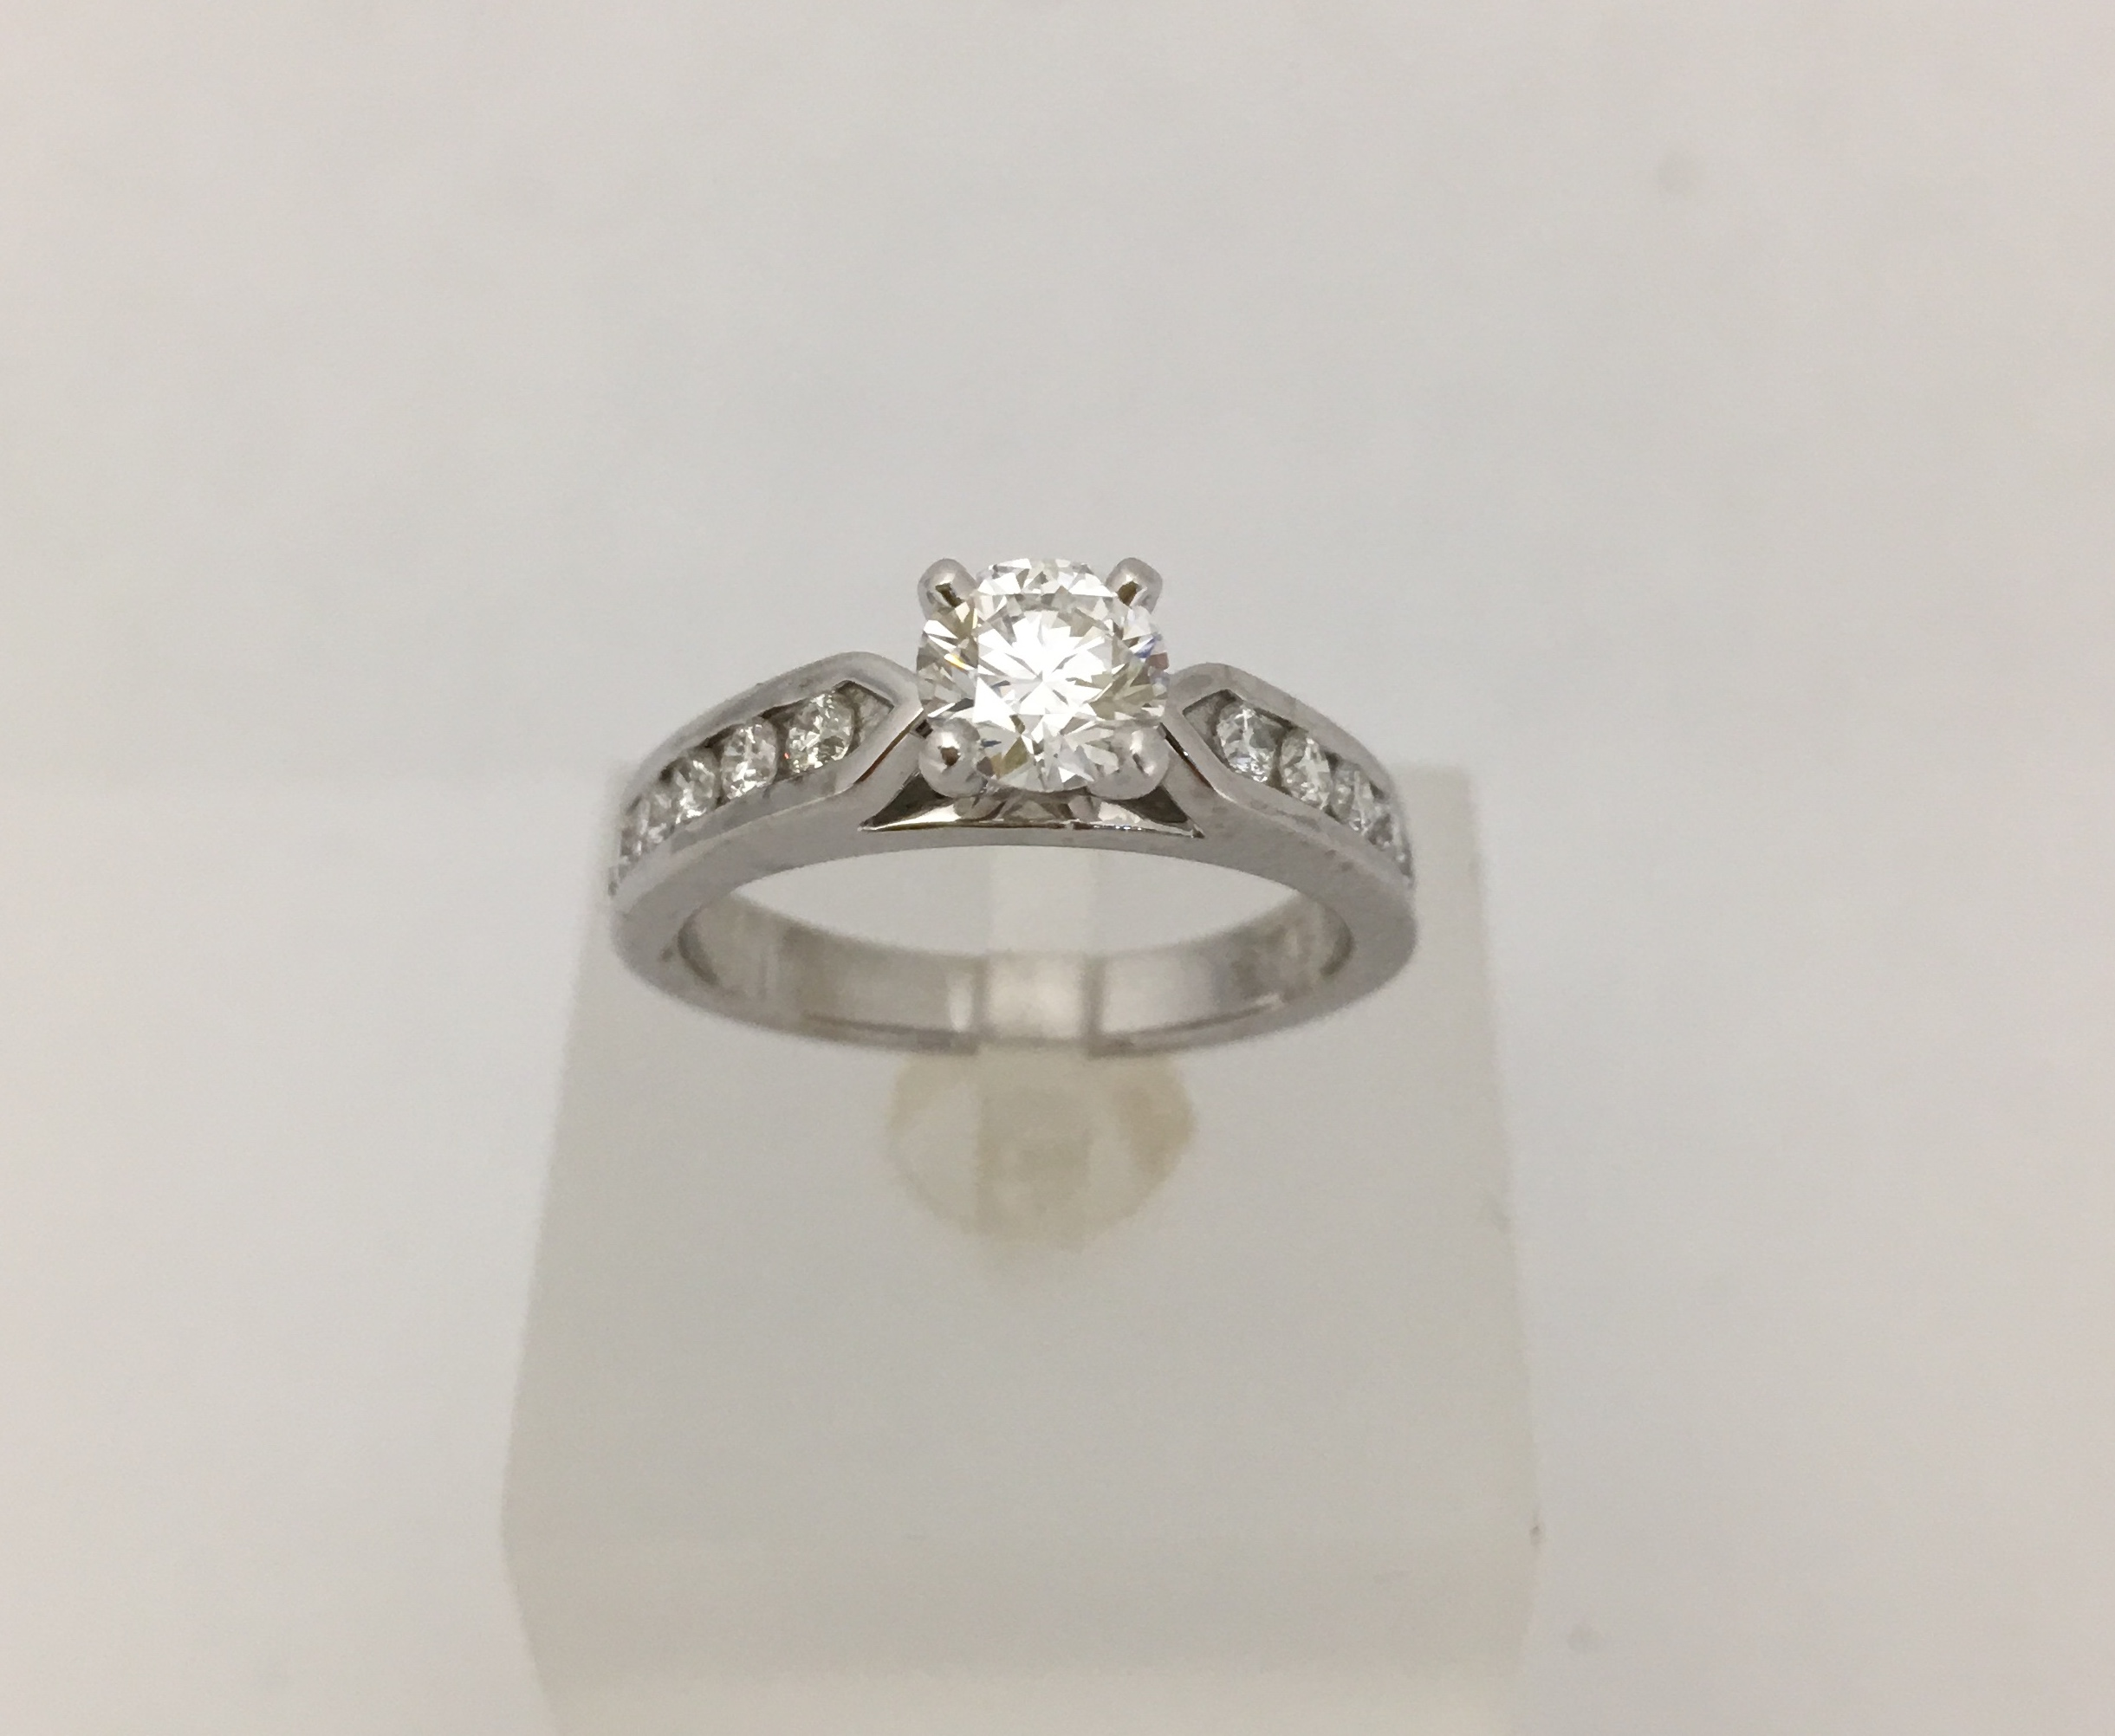 solitaire engagement img flawless cut ring gold gia white internally ct product diamond tiffany certified co platinum marquise carat